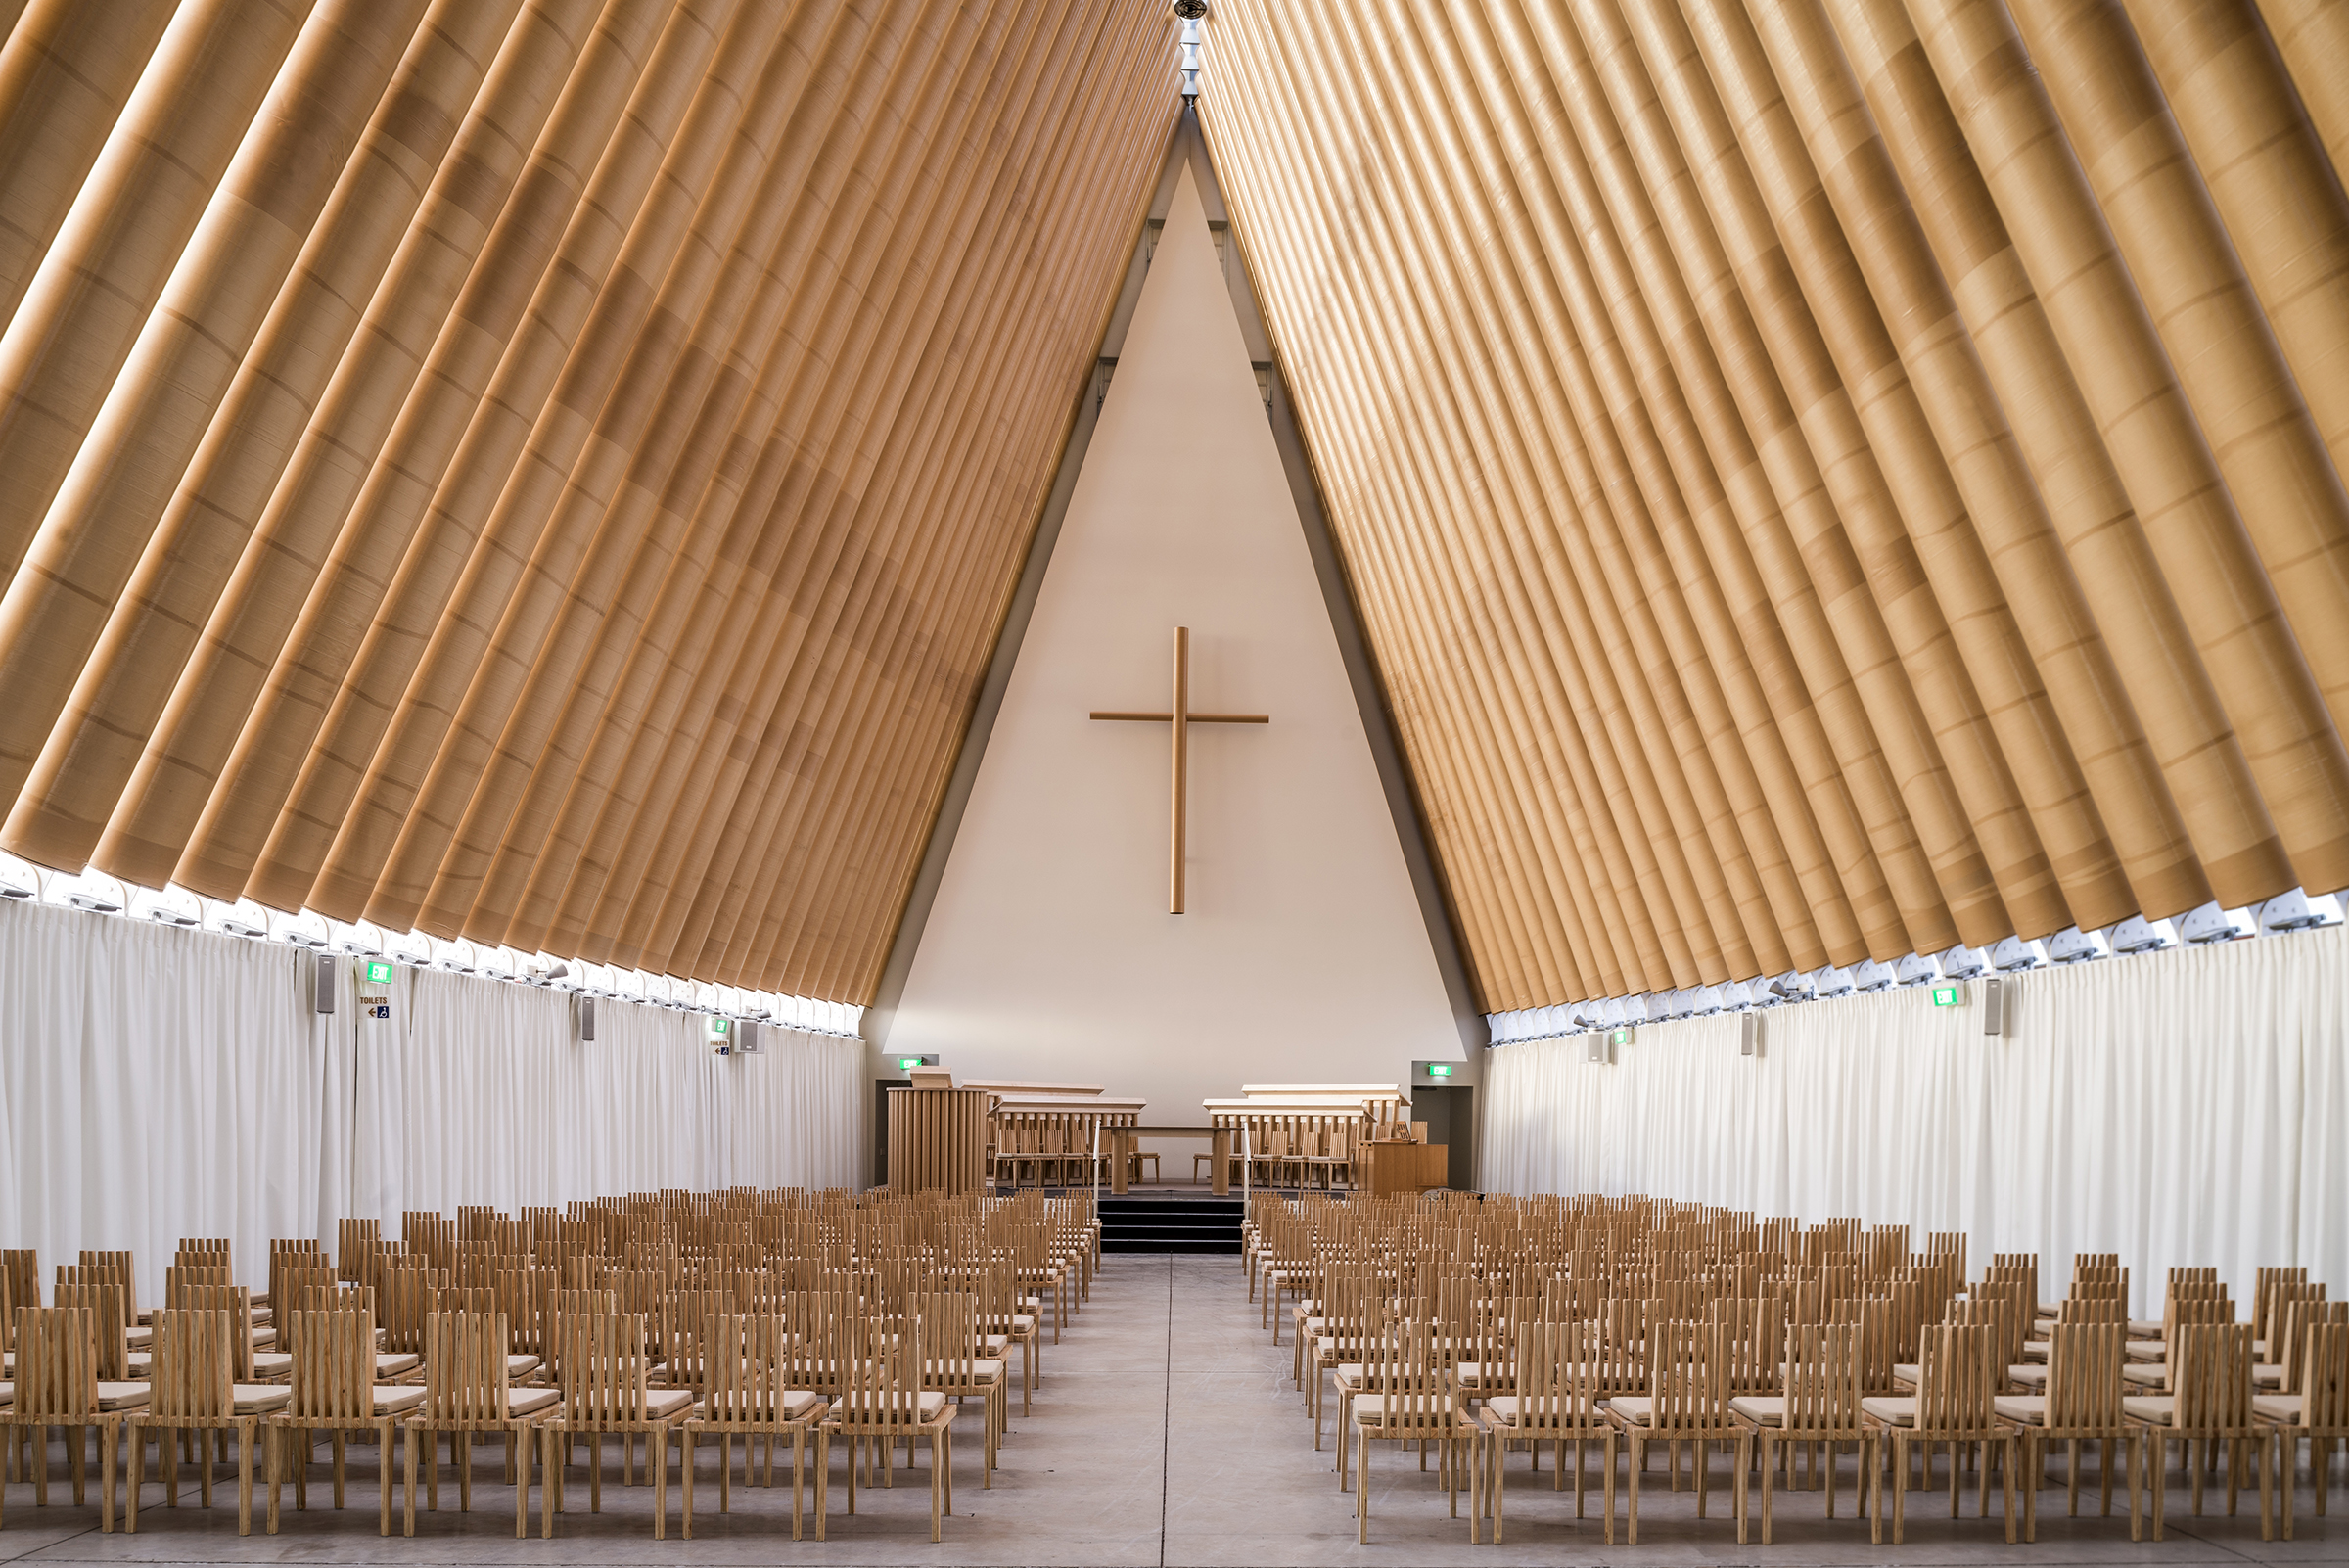 Cardboard Cathedral, 2013, Christchurch, New Zealand. fot. Stephen Goodenough